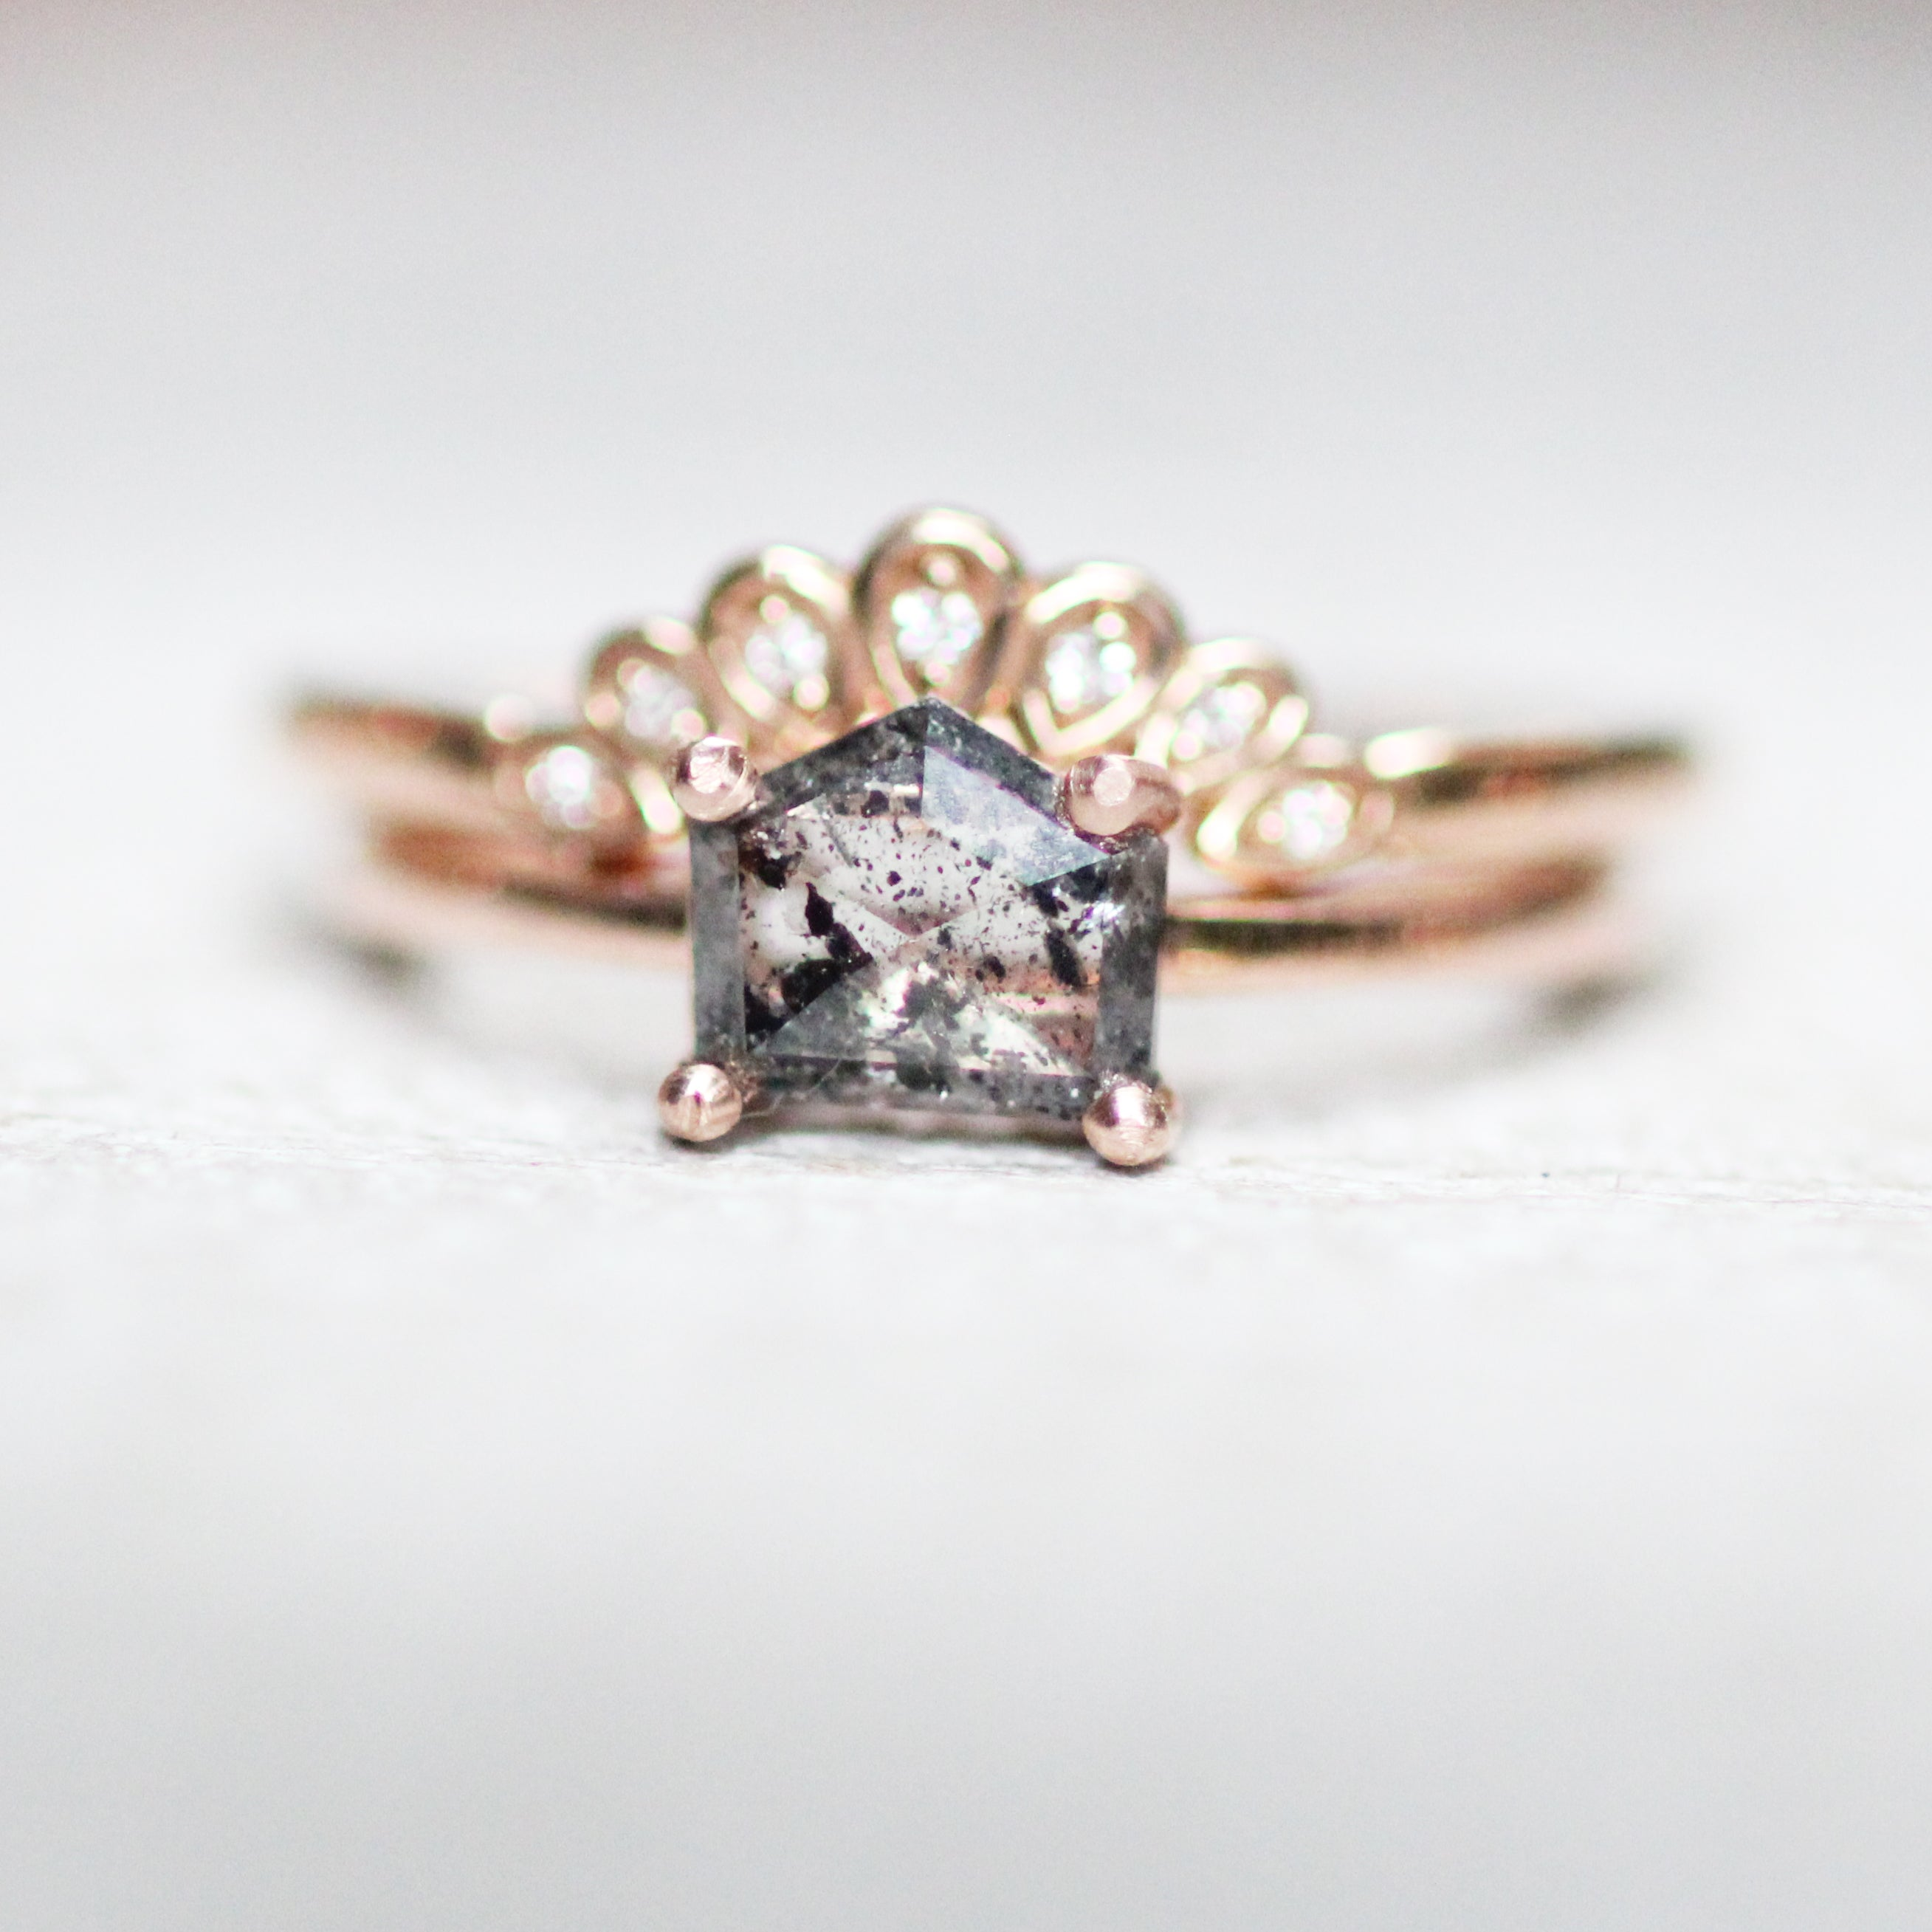 Ruthie Ring with a Gray Black Celestial Pentagon Diamond in 10k Rose Gold - Ready to size and ship - Celestial Diamonds ® by Midwinter Co.